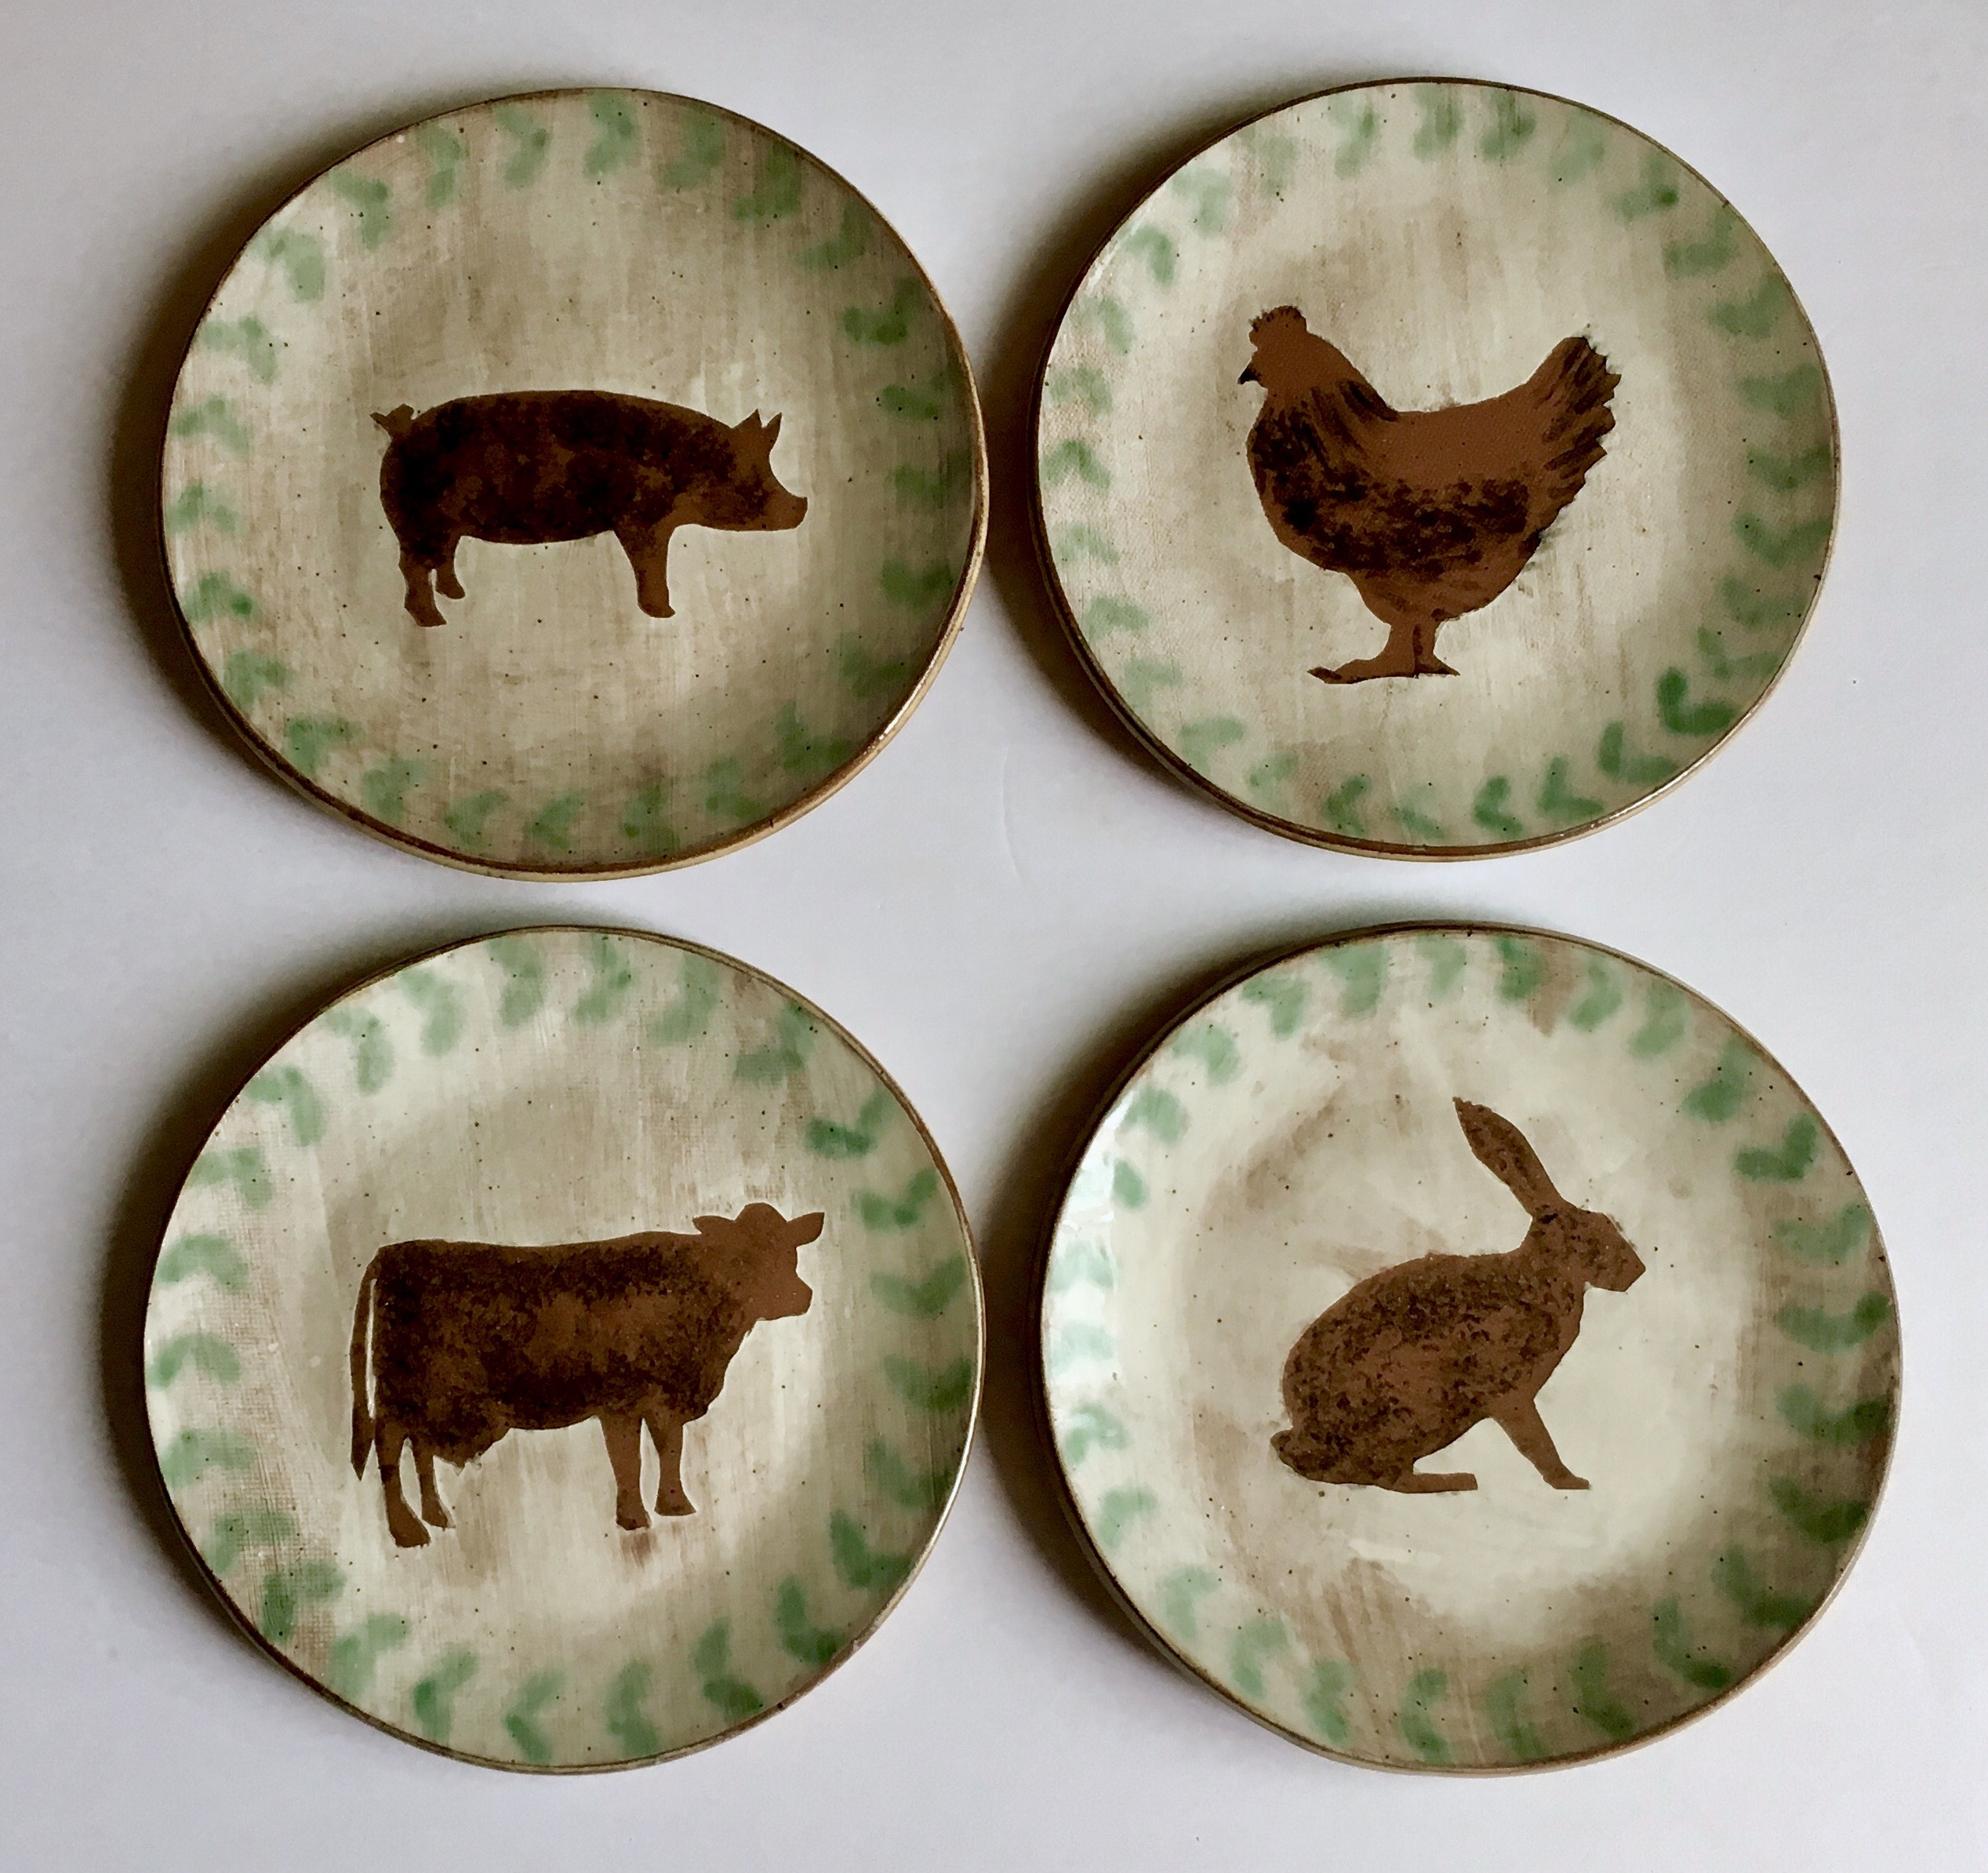 Jennifer Hamilton Ceramic Dessert Plates - Farm Animal Series